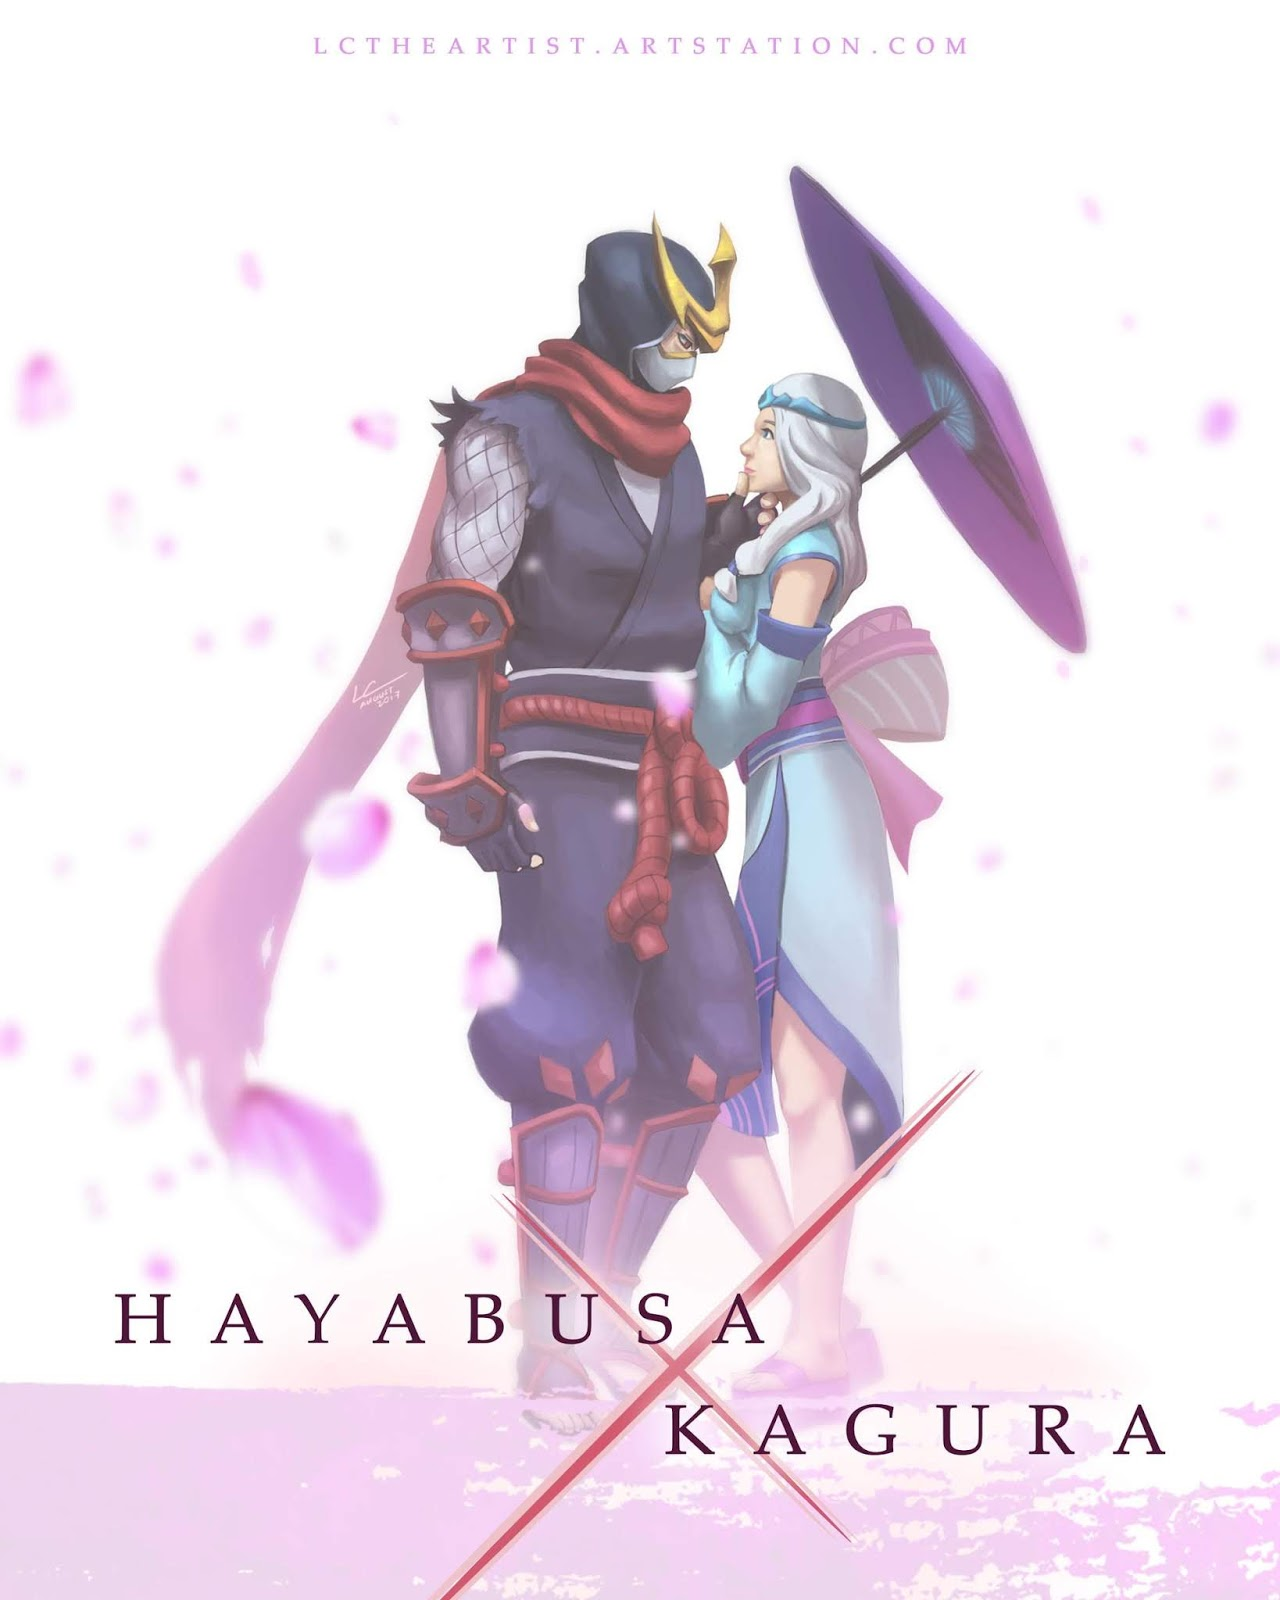 Wallpaper Kagura and Hayabusa Mobile Legends Full HD for Android and iOS